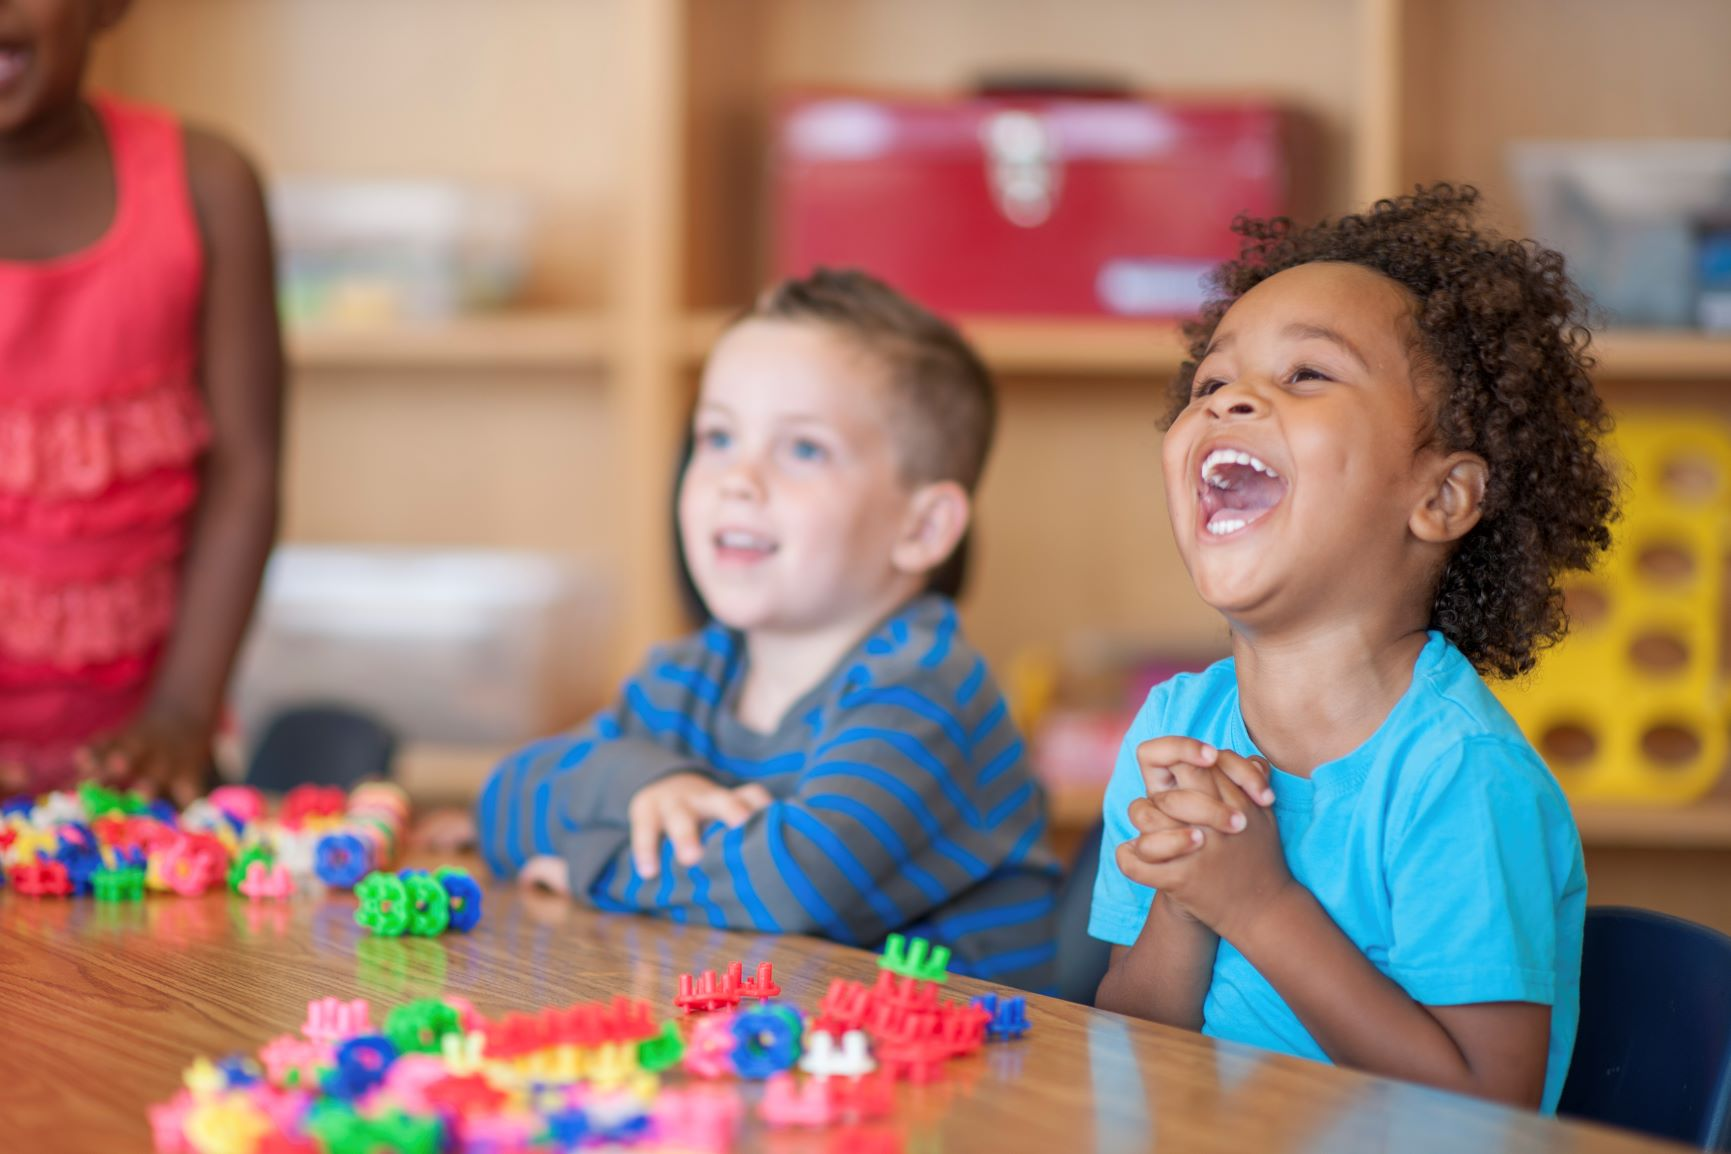 Preschool children are playing with toy blocks and laughing together at a classroom table.